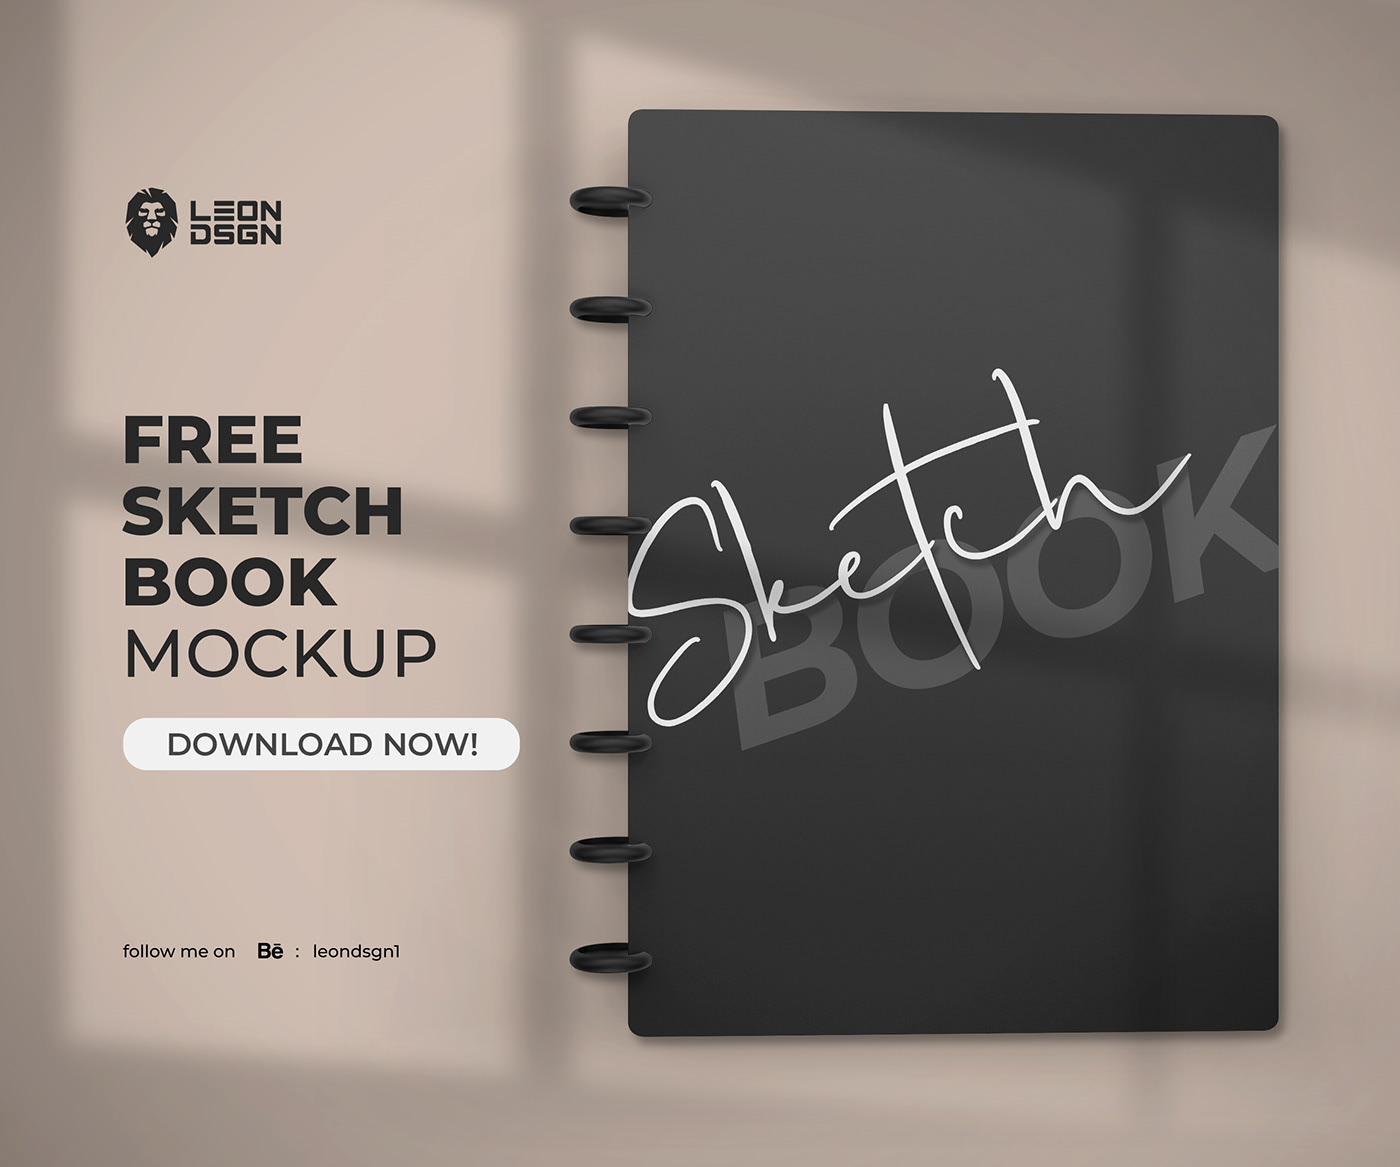 SketchBook Mockup Free PSD Template